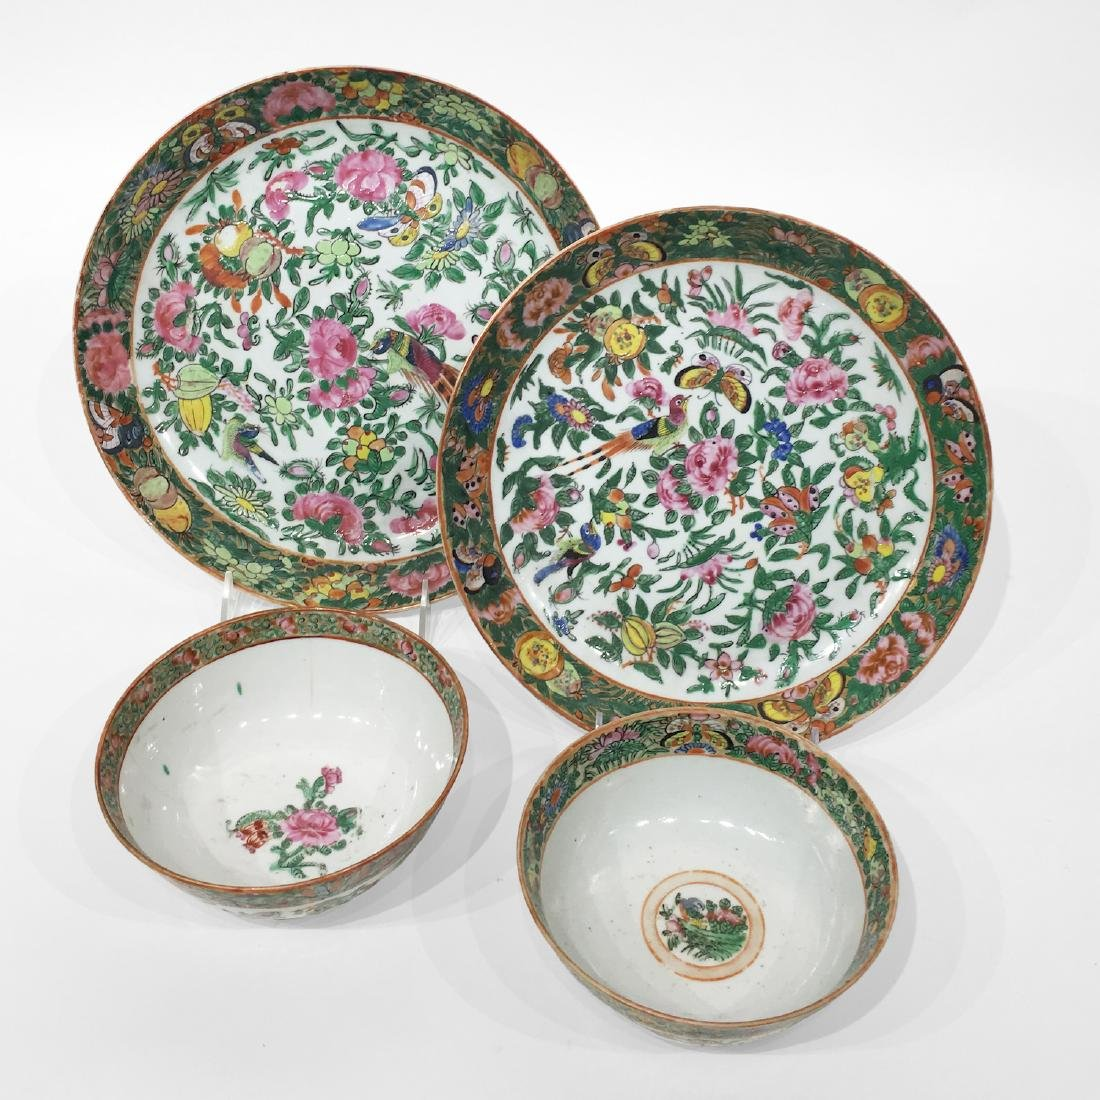 Two Rose Medallion Plates and 2 Bowls